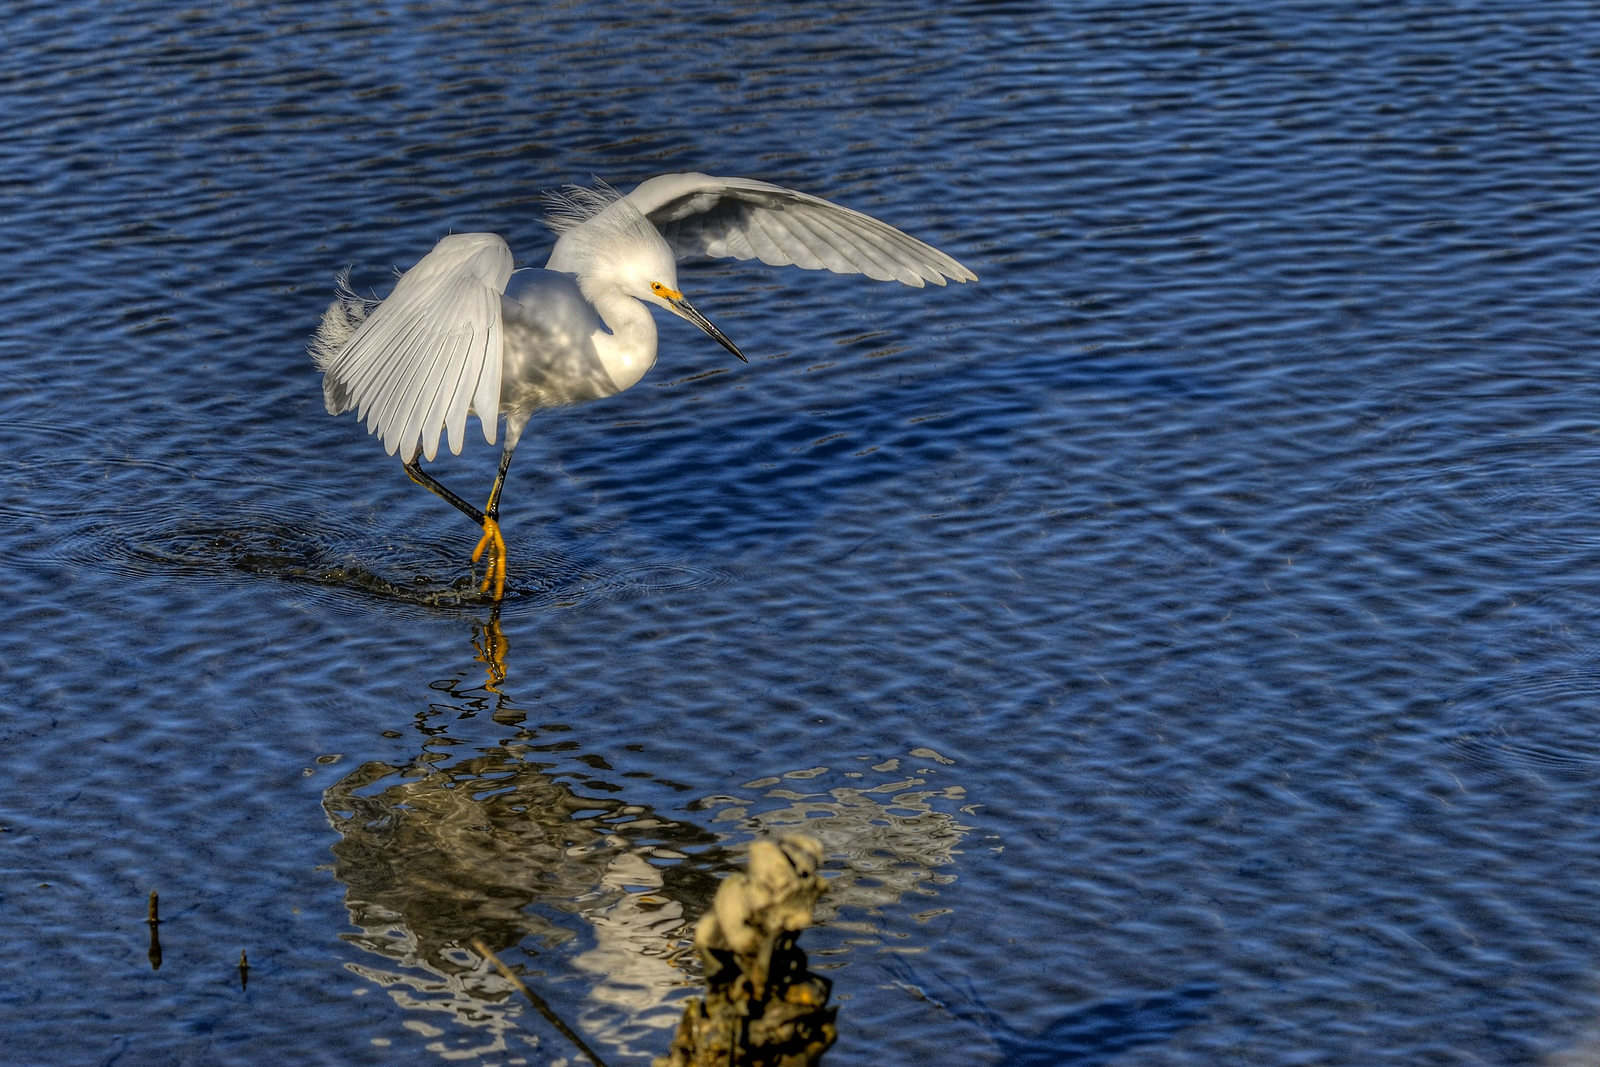 A snowy egret lands in the water in Huntington Beach State Park in Murrells Inlet, South Carolina on Monday, January 30, 2012. Copyright 2012 Jason Barnette